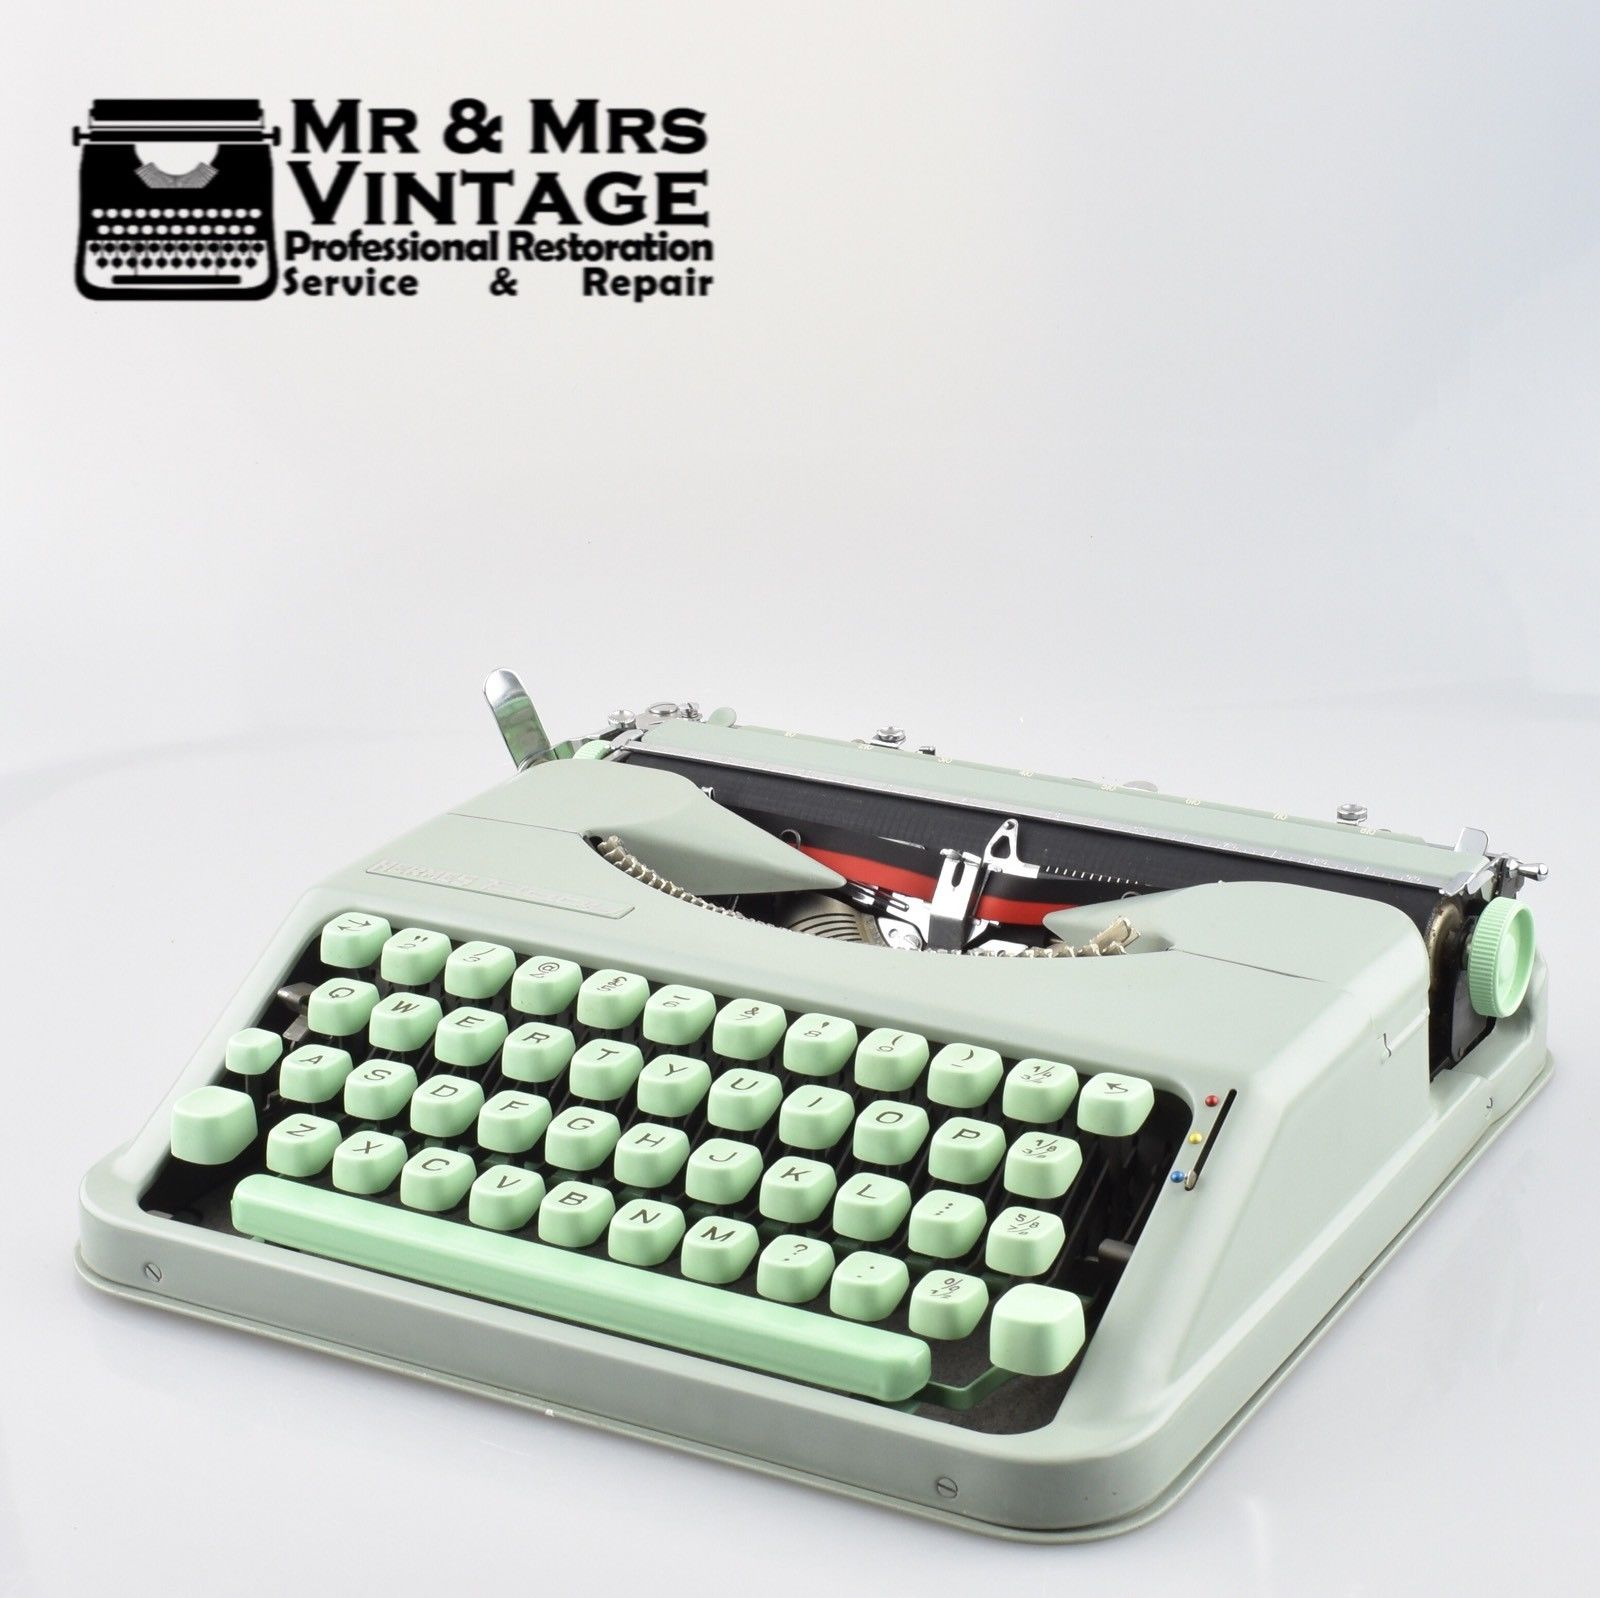 Pristine Hermes Baby Typewriter with Green Keys Mint Condition